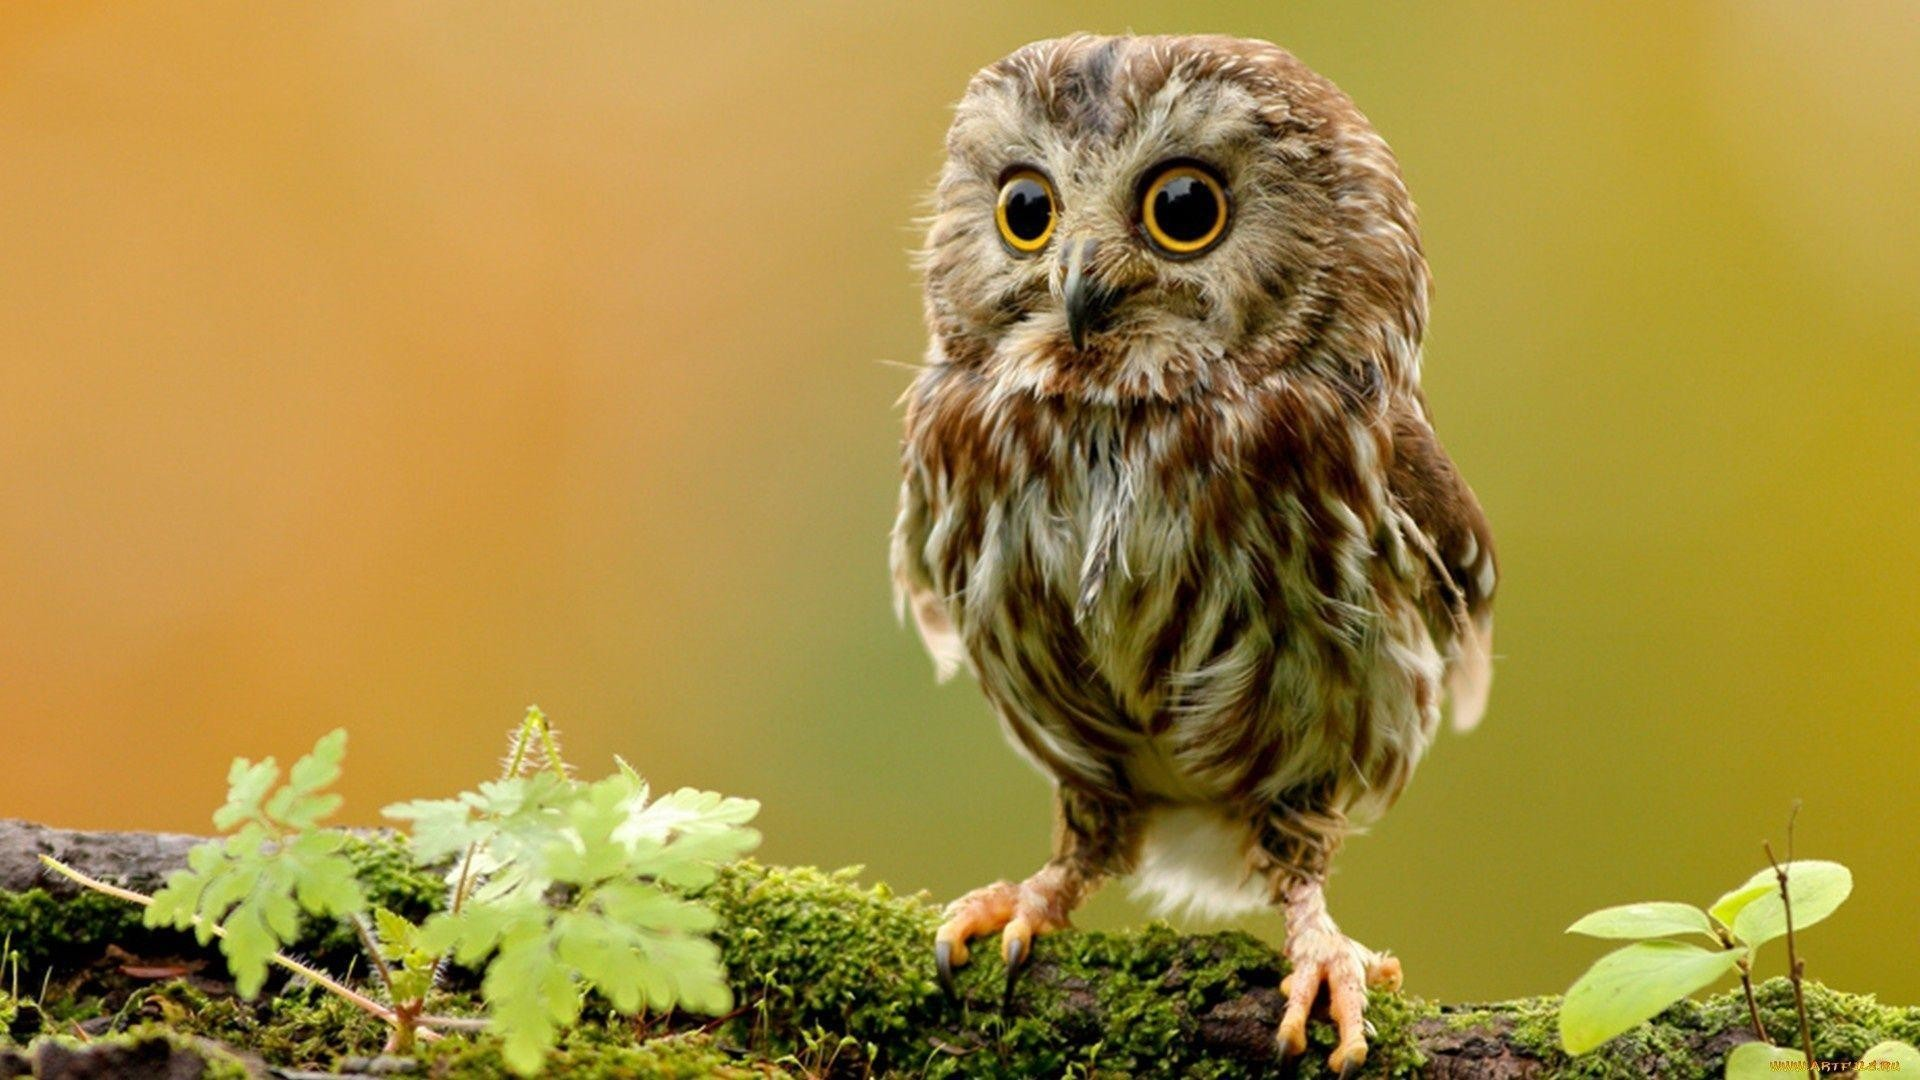 1920x1080 A selection of 10 Images of Owl in HD quality